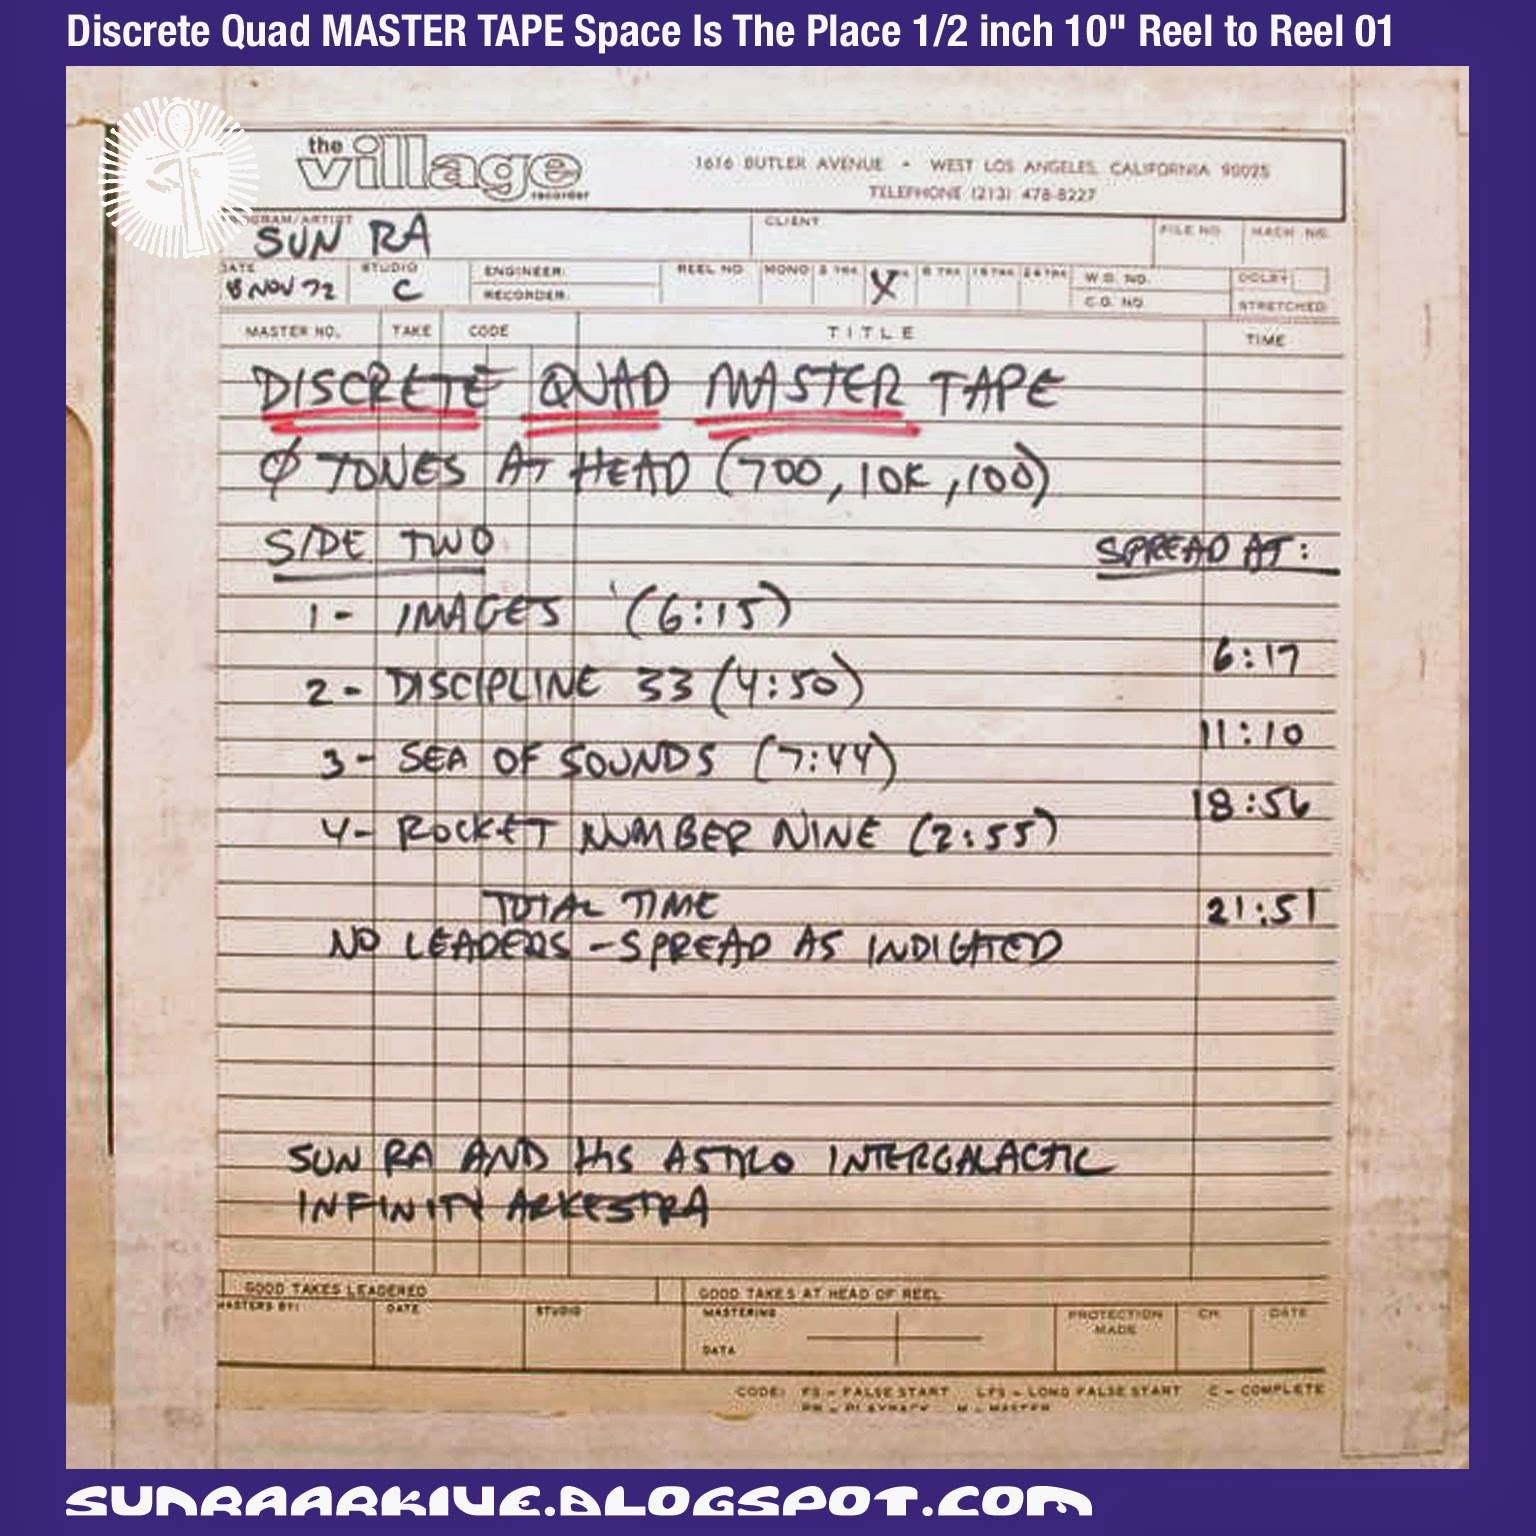 "Sun Ra Arkive: Sun Ra Reel To Reel Master Tapes from Ebay - Discrete Quad MASTER TAPE Space Is The Place 1/2 inch 10"" Reel to Reel 01"